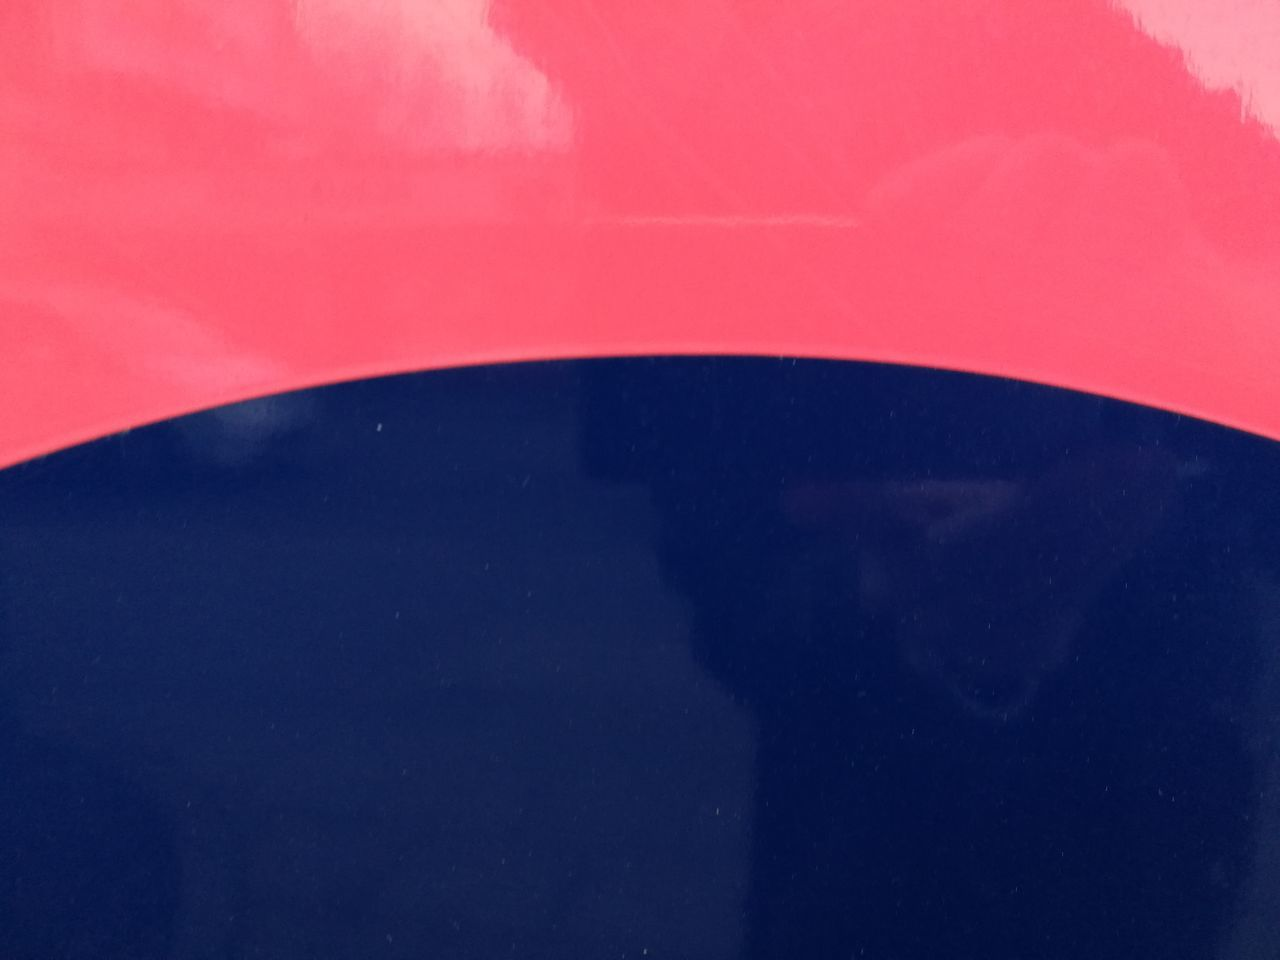 "Red/pink landscape with hand three fingers and dark blue Face shadow reflections..... of me and street houses on a sign by a wall outside gym building in London, February 2017, noticed and captured during my ""walking around"". The City Light Captured Moment Huaweiphotography Huawai P9 Capture The Moment Walking Around Walking Around The City  My Year My View My Point Of View Red red Close-up Backgrounds Day Outdoors No People Urban Poetry Artistic Full Frame"